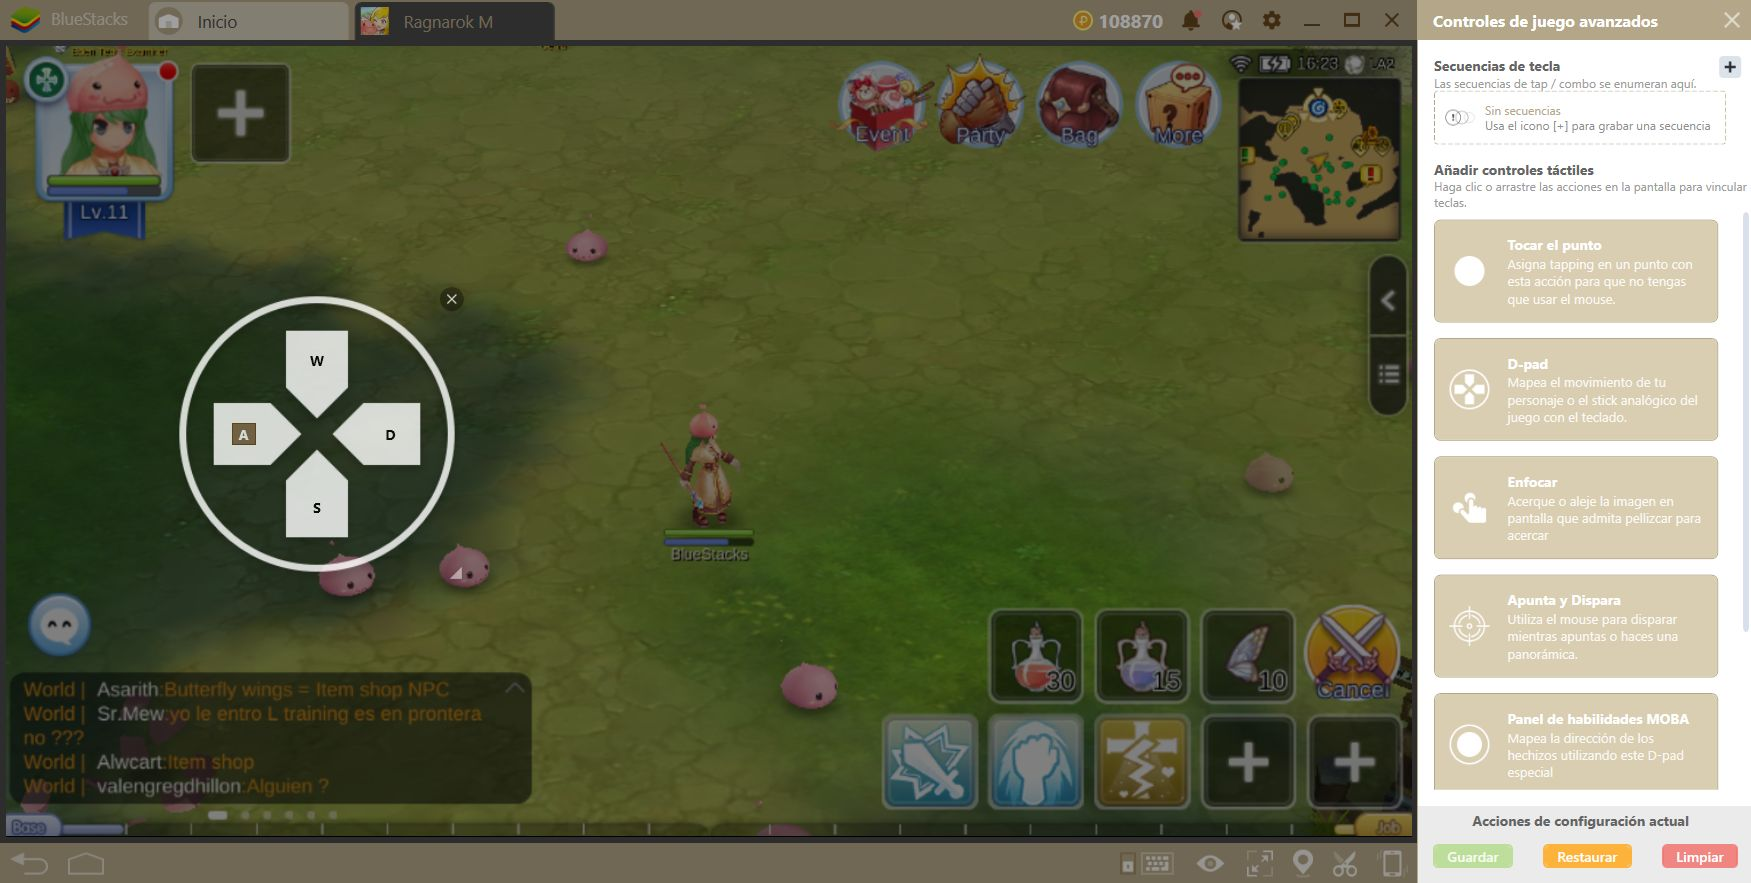 Relive the Classic Online Experience With Ragnarok M: Eternal Love and BlueStacks